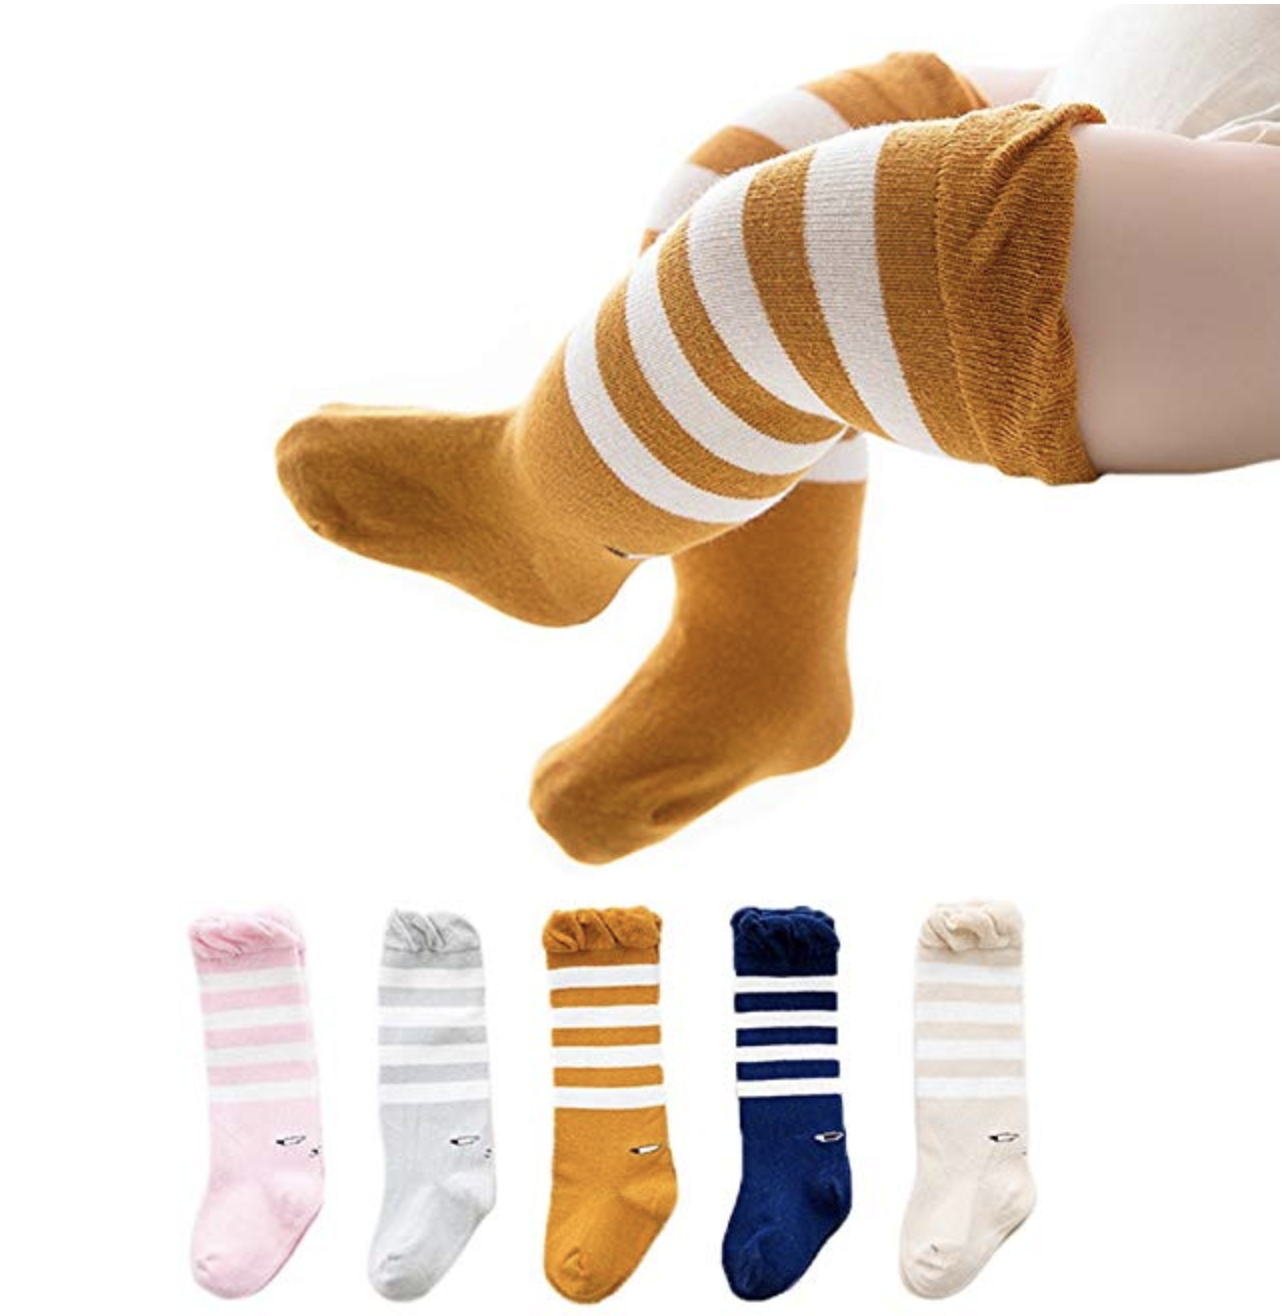 Copy of Joylish 5 Pairs Baby Knee High Socks for Girls Boys - Unisex Newborn Stockings Cotton